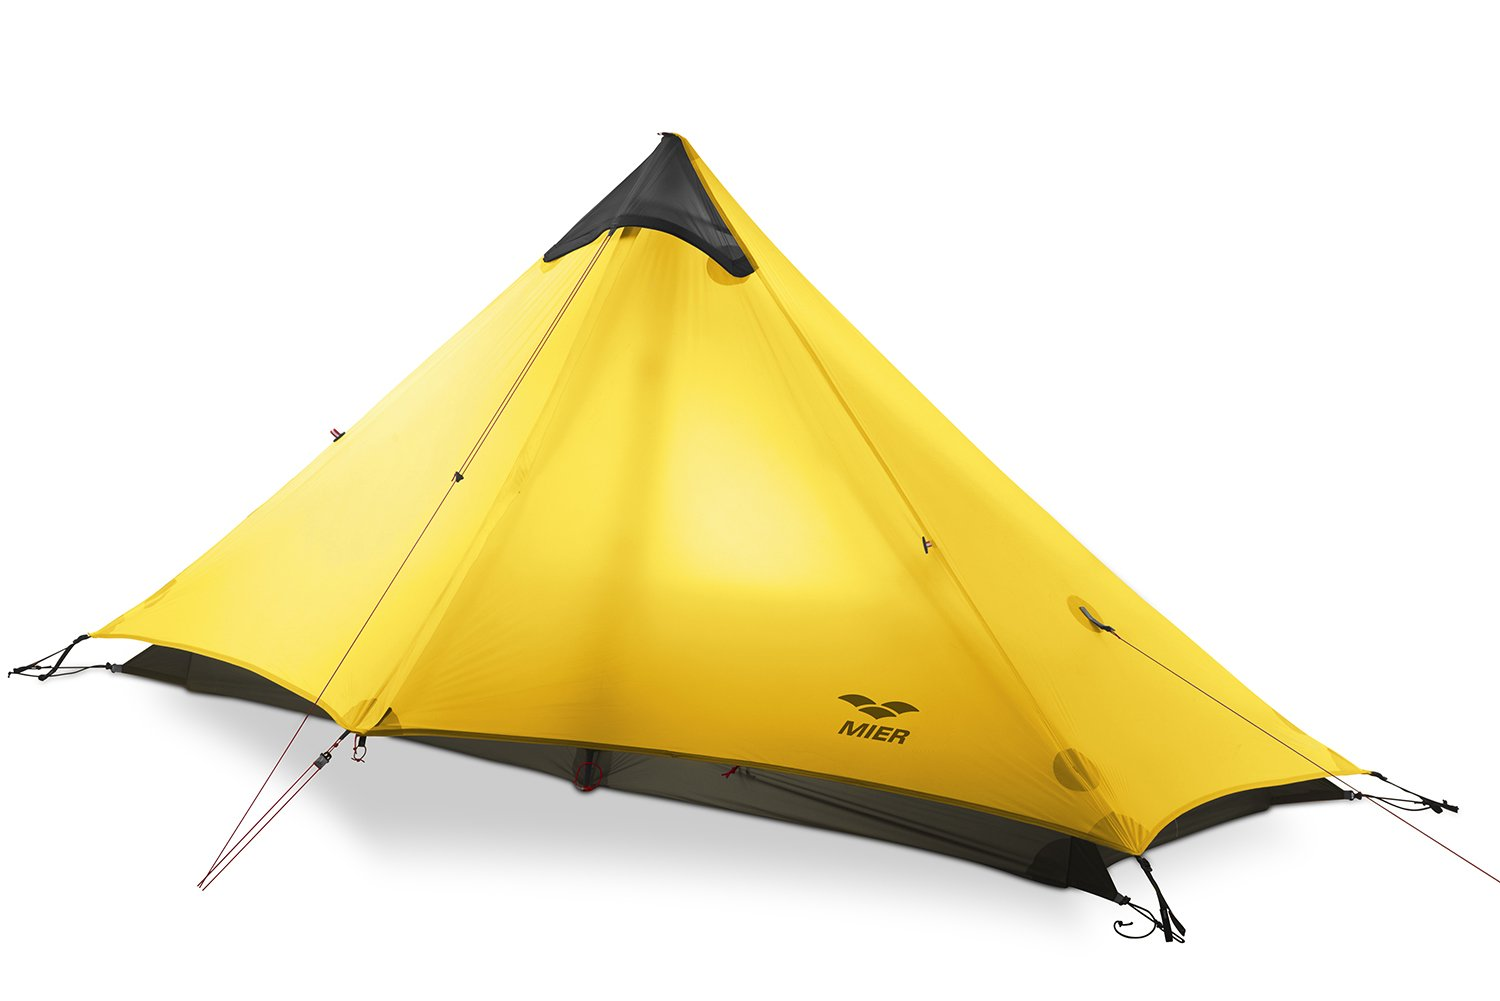 MIER Ultralight Tent 3-Season Backpacking Tent for 1-Person or 2-Person Camping, Trekking, Kayaking, Climbing, Hiking (Trekking Pole is NOT Included), Yellow, 1-Person